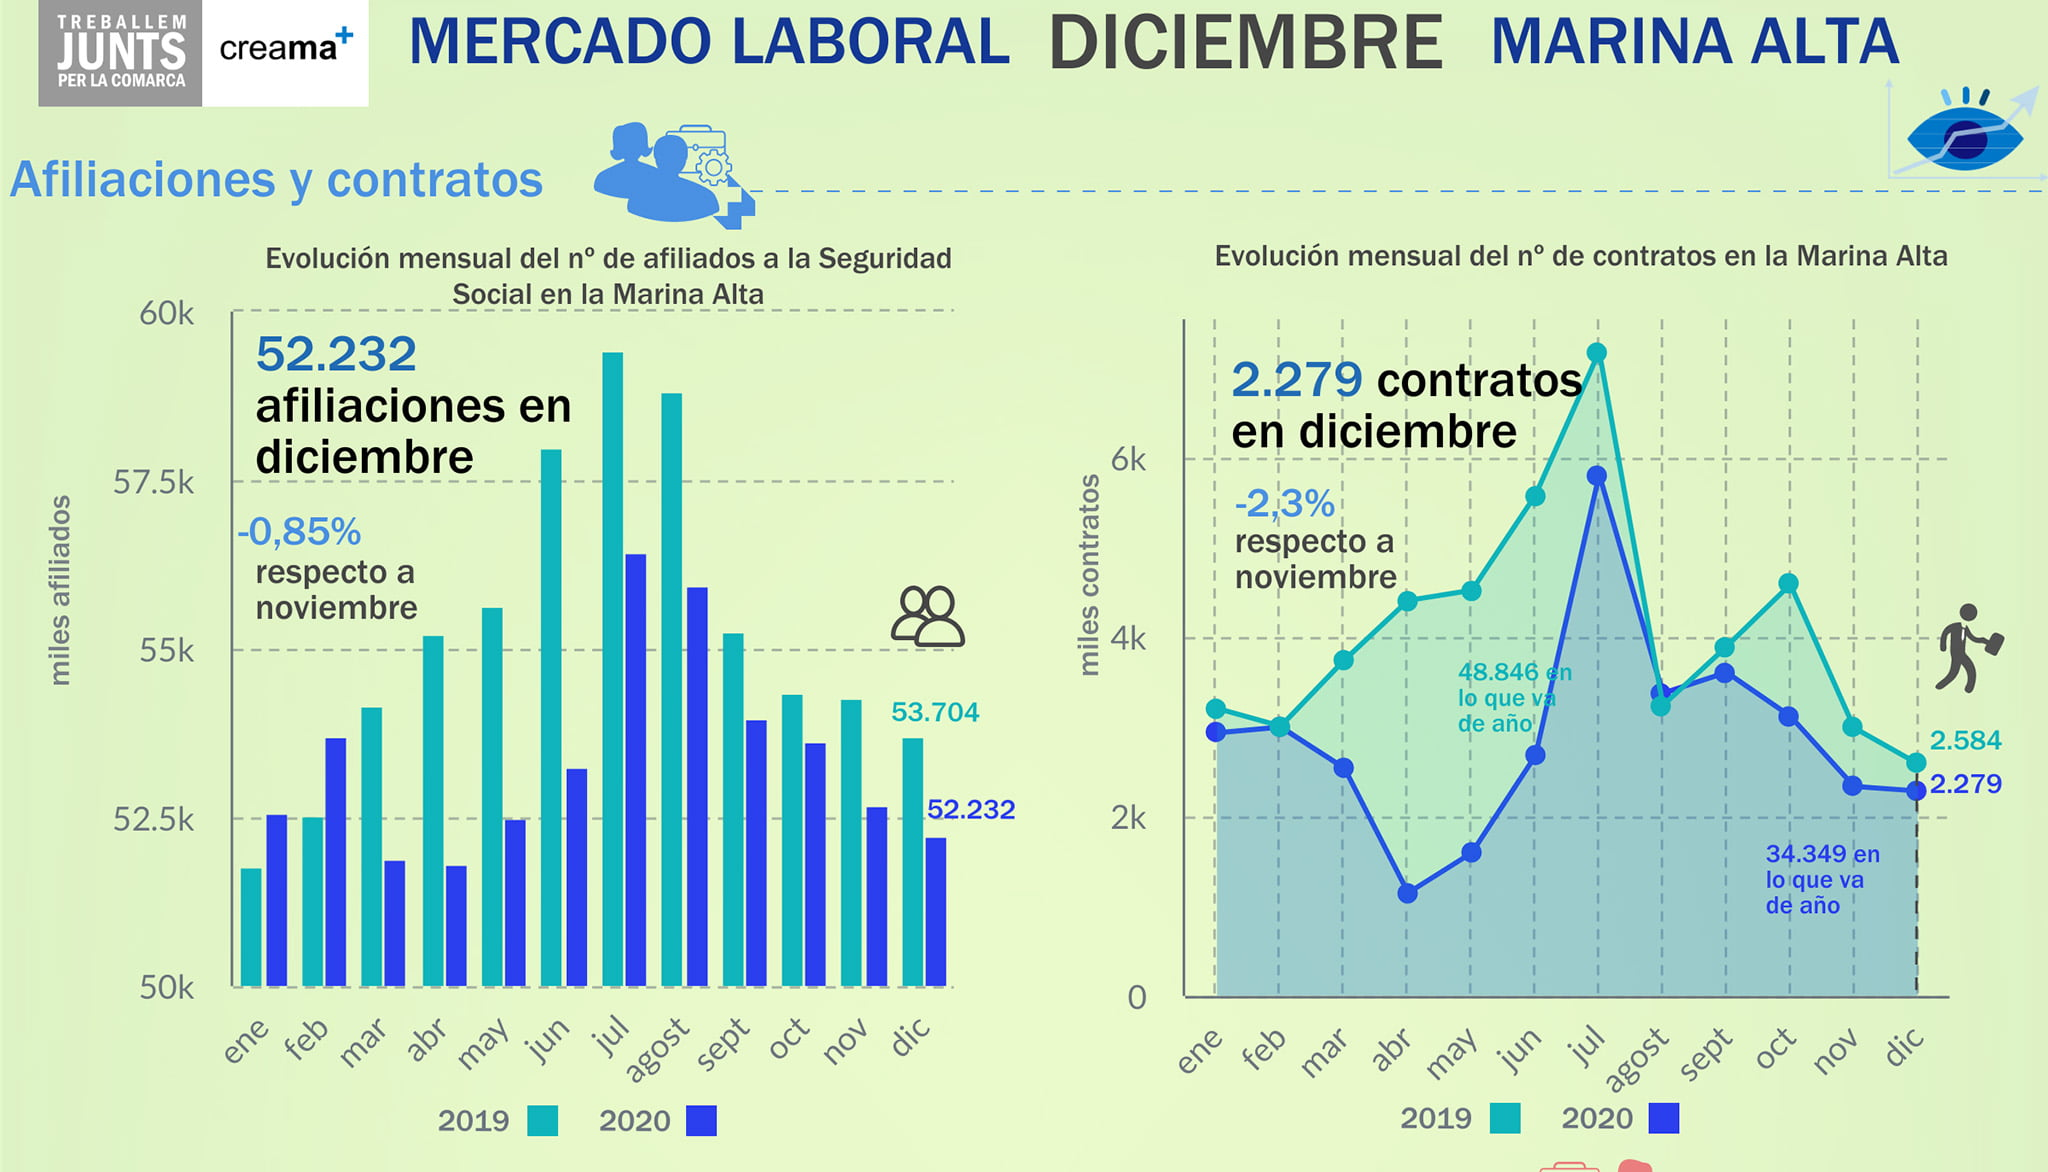 Affiliations and contracts in the Marina Alta during December 2020